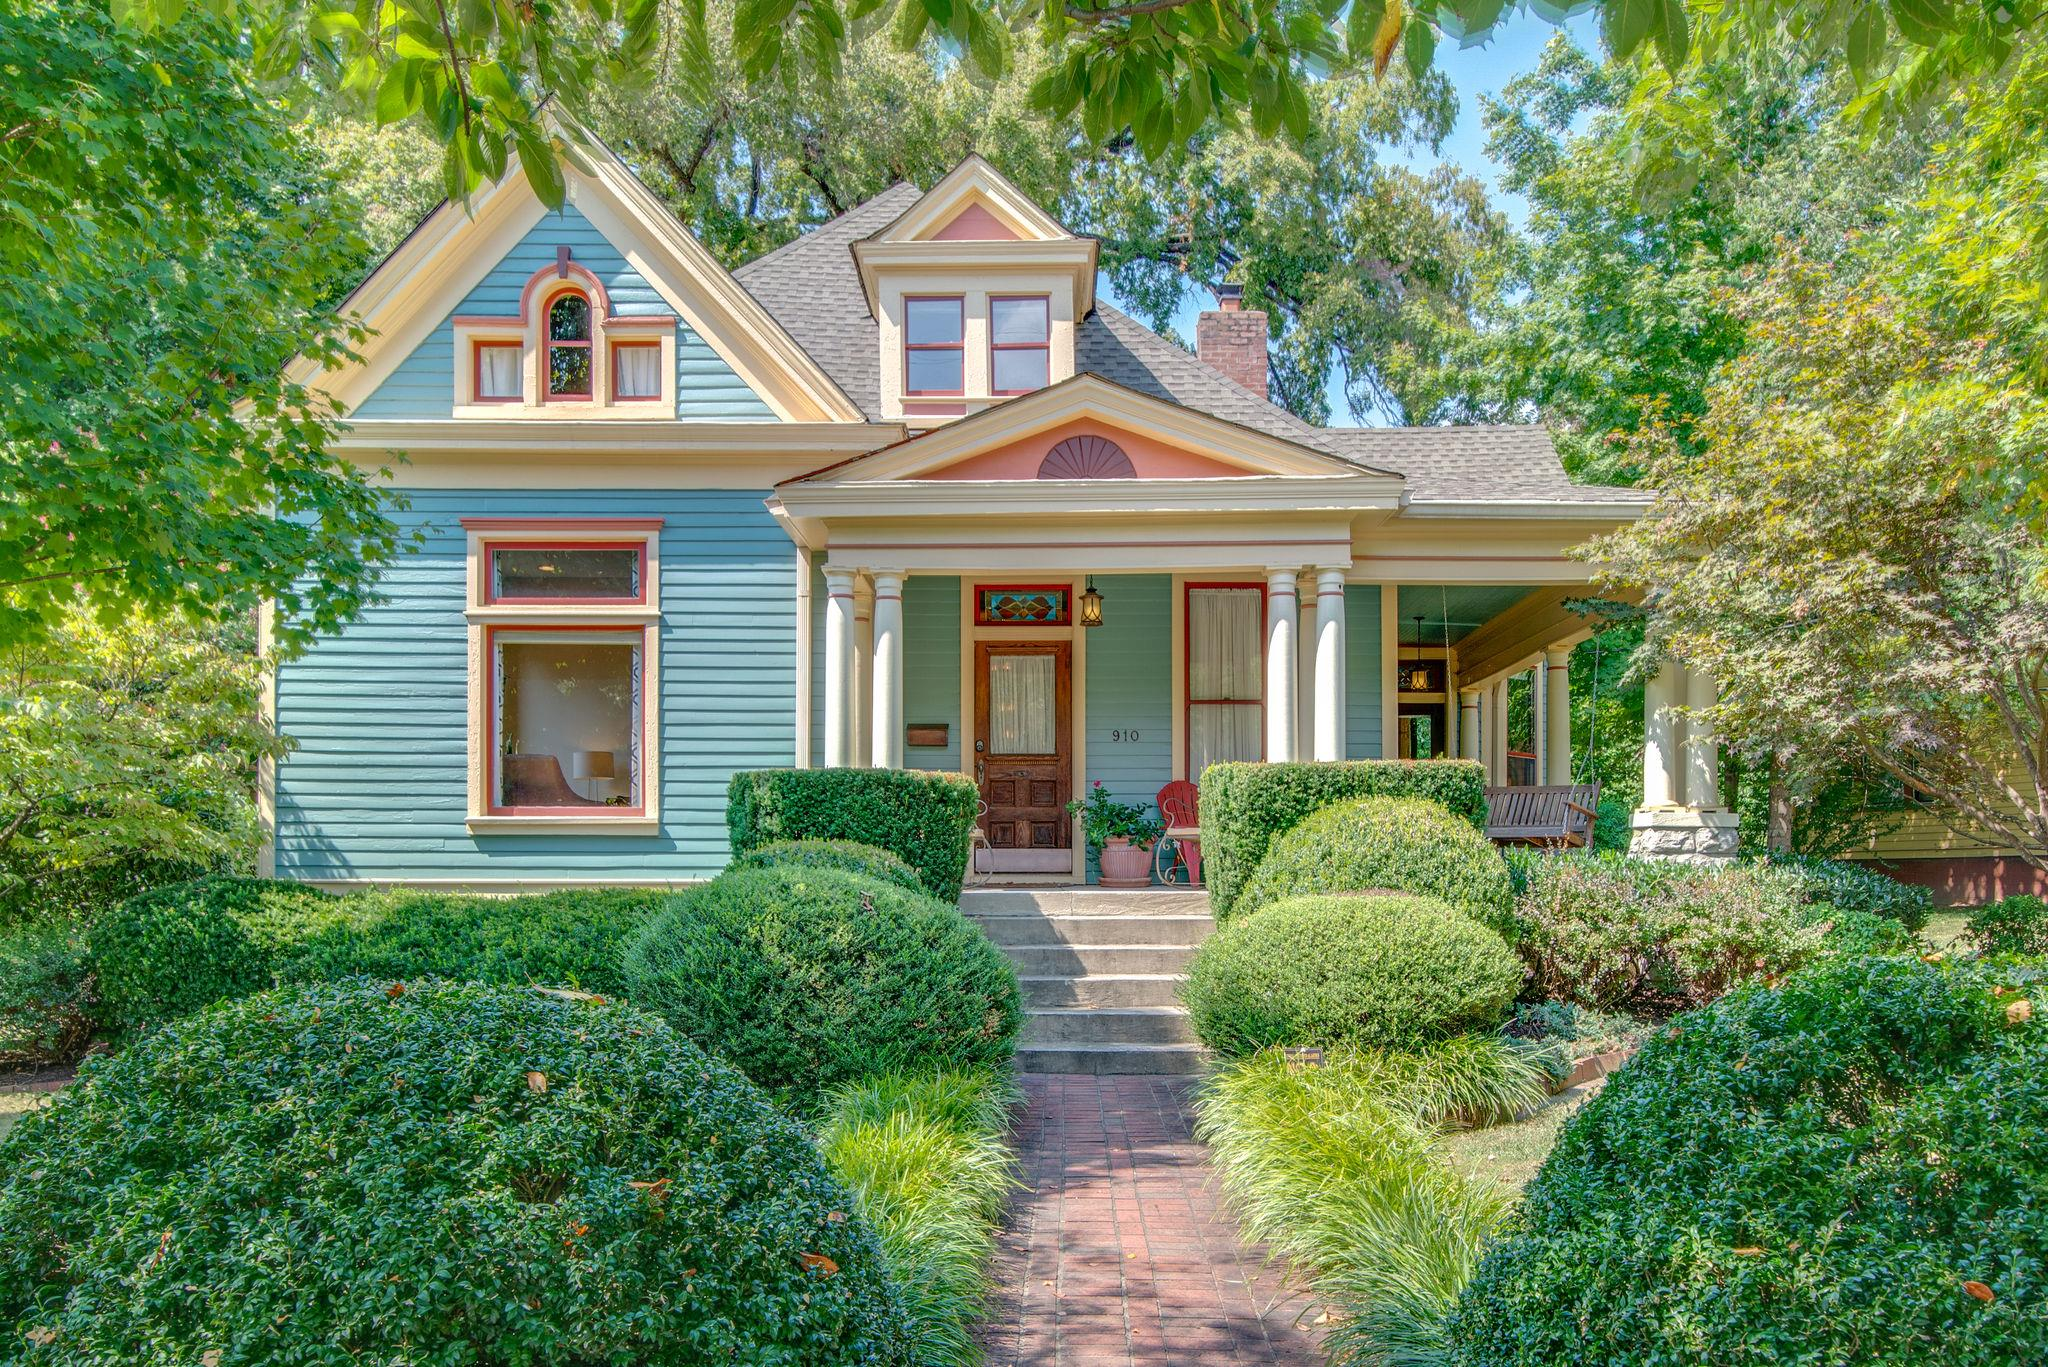 910 S Douglas Ave, Nashville, TN 37204 - Nashville, TN real estate listing